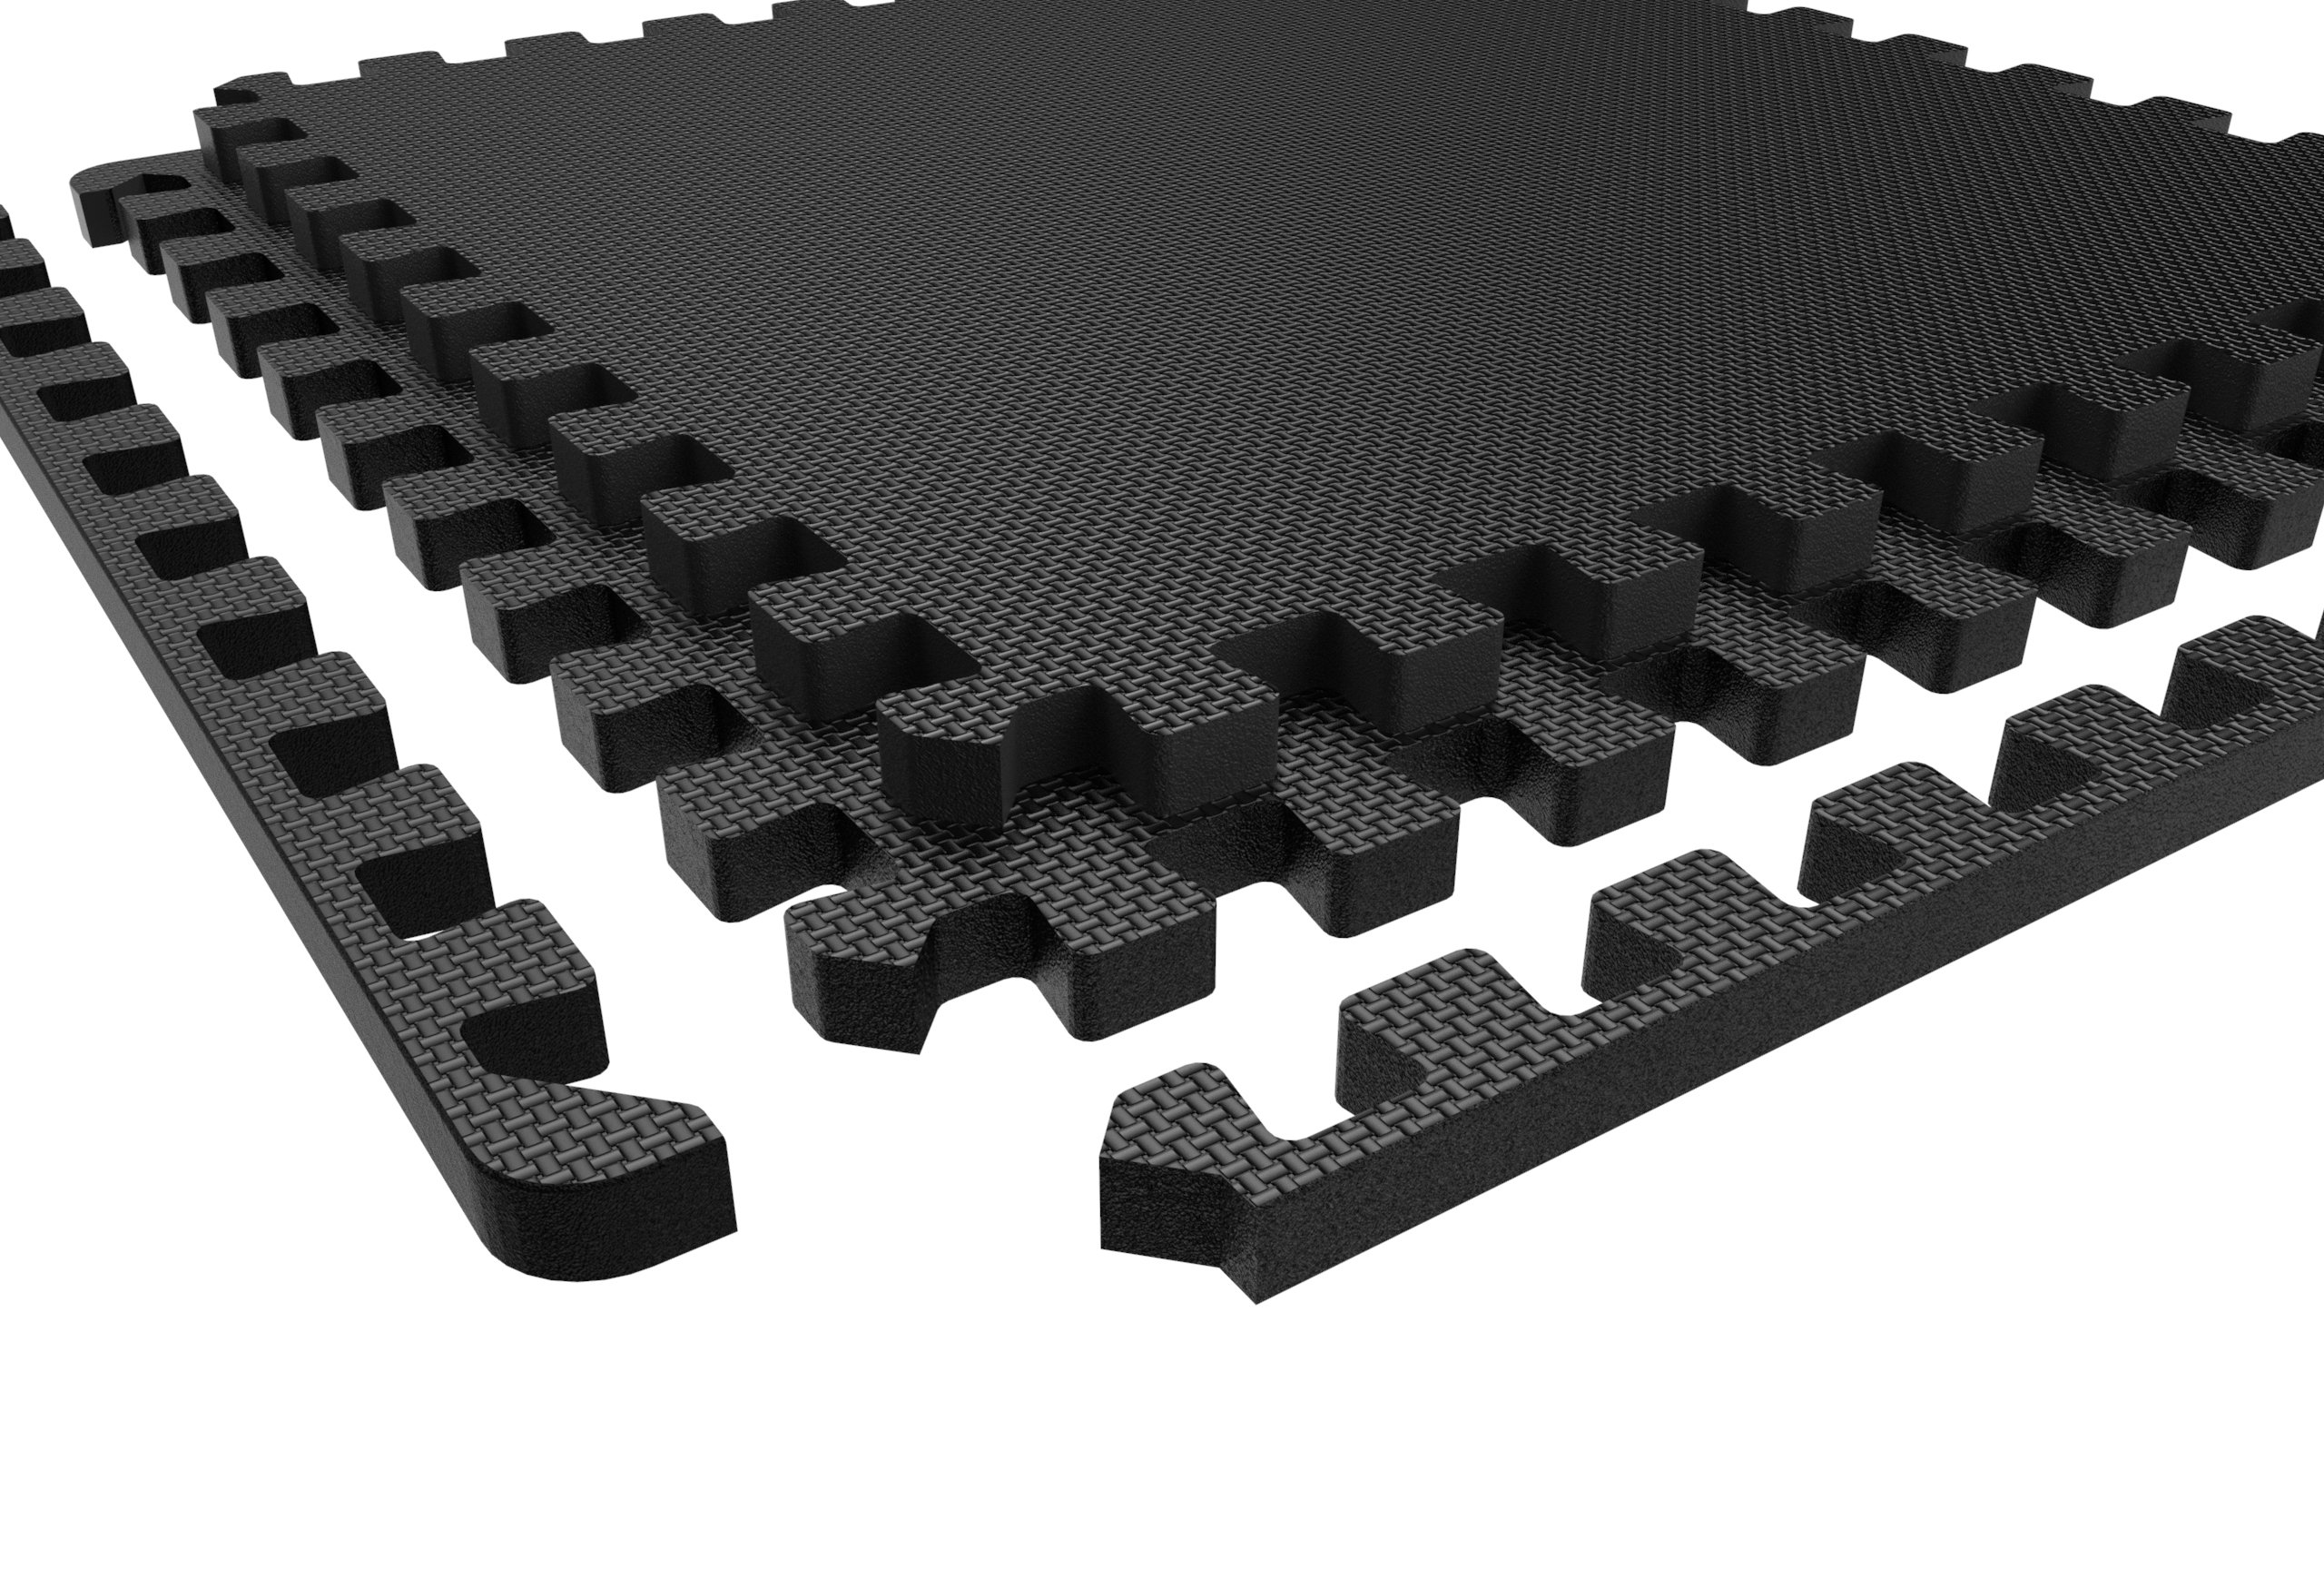 LEVOIT Puzzle Exercise Floor Mat for Gym Equipment, EVA Foam Interlocking Tiles, Protective Flooring for Working Out, Easy Assembly, 24 SQ FT (6 Tiles, 12 Borders), Black by LEVOIT (Image #9)